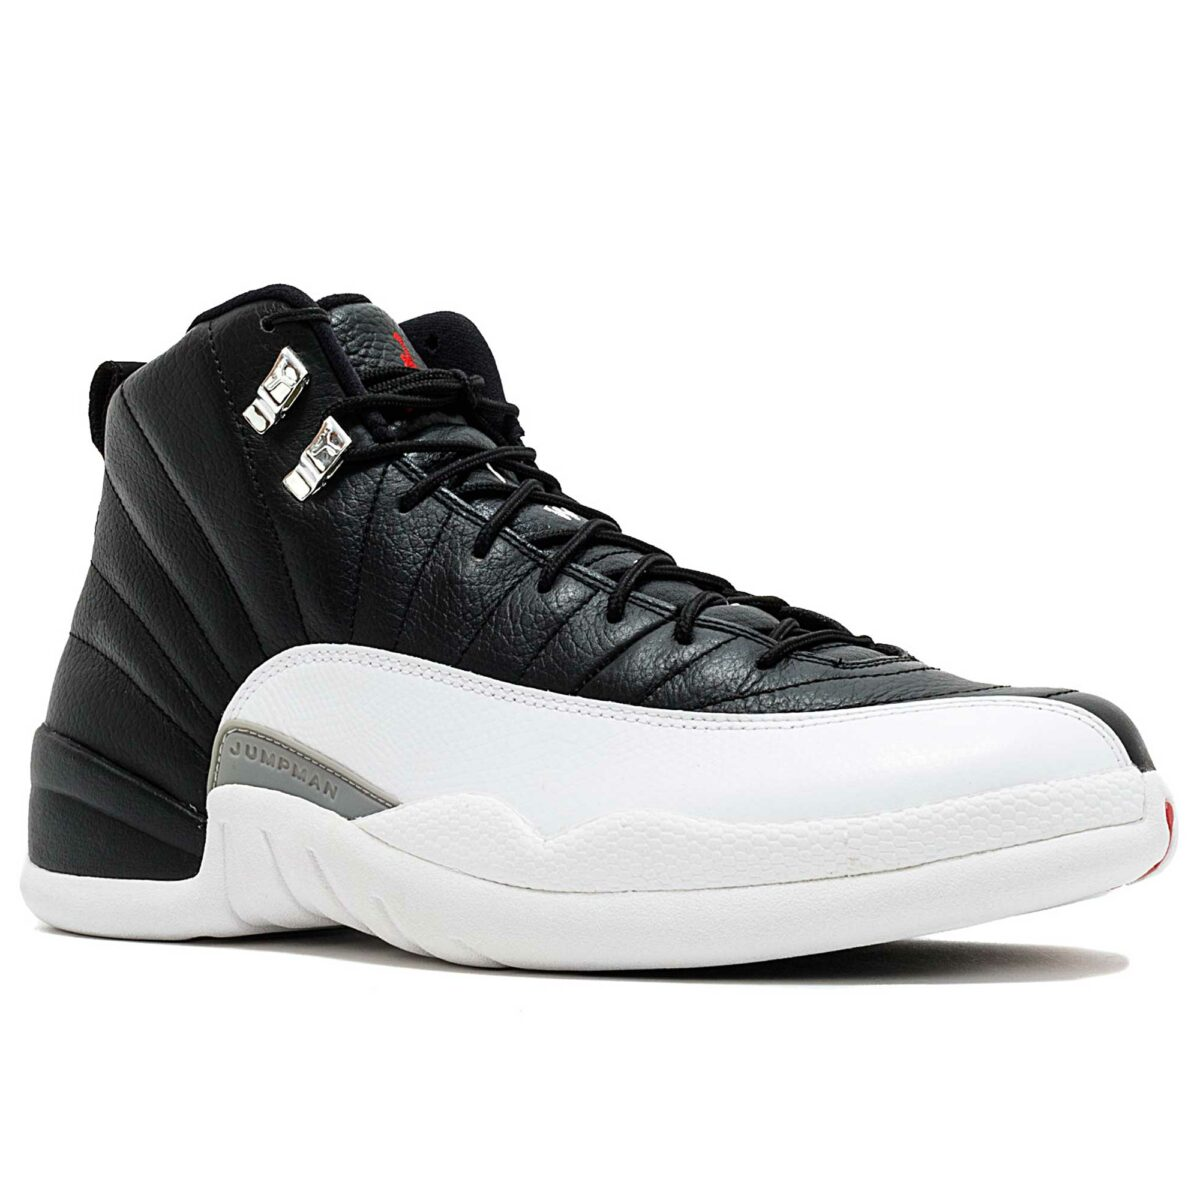 купить оригинальные nike air Jordan 12 XII retro playoff 2012 release 130690-001